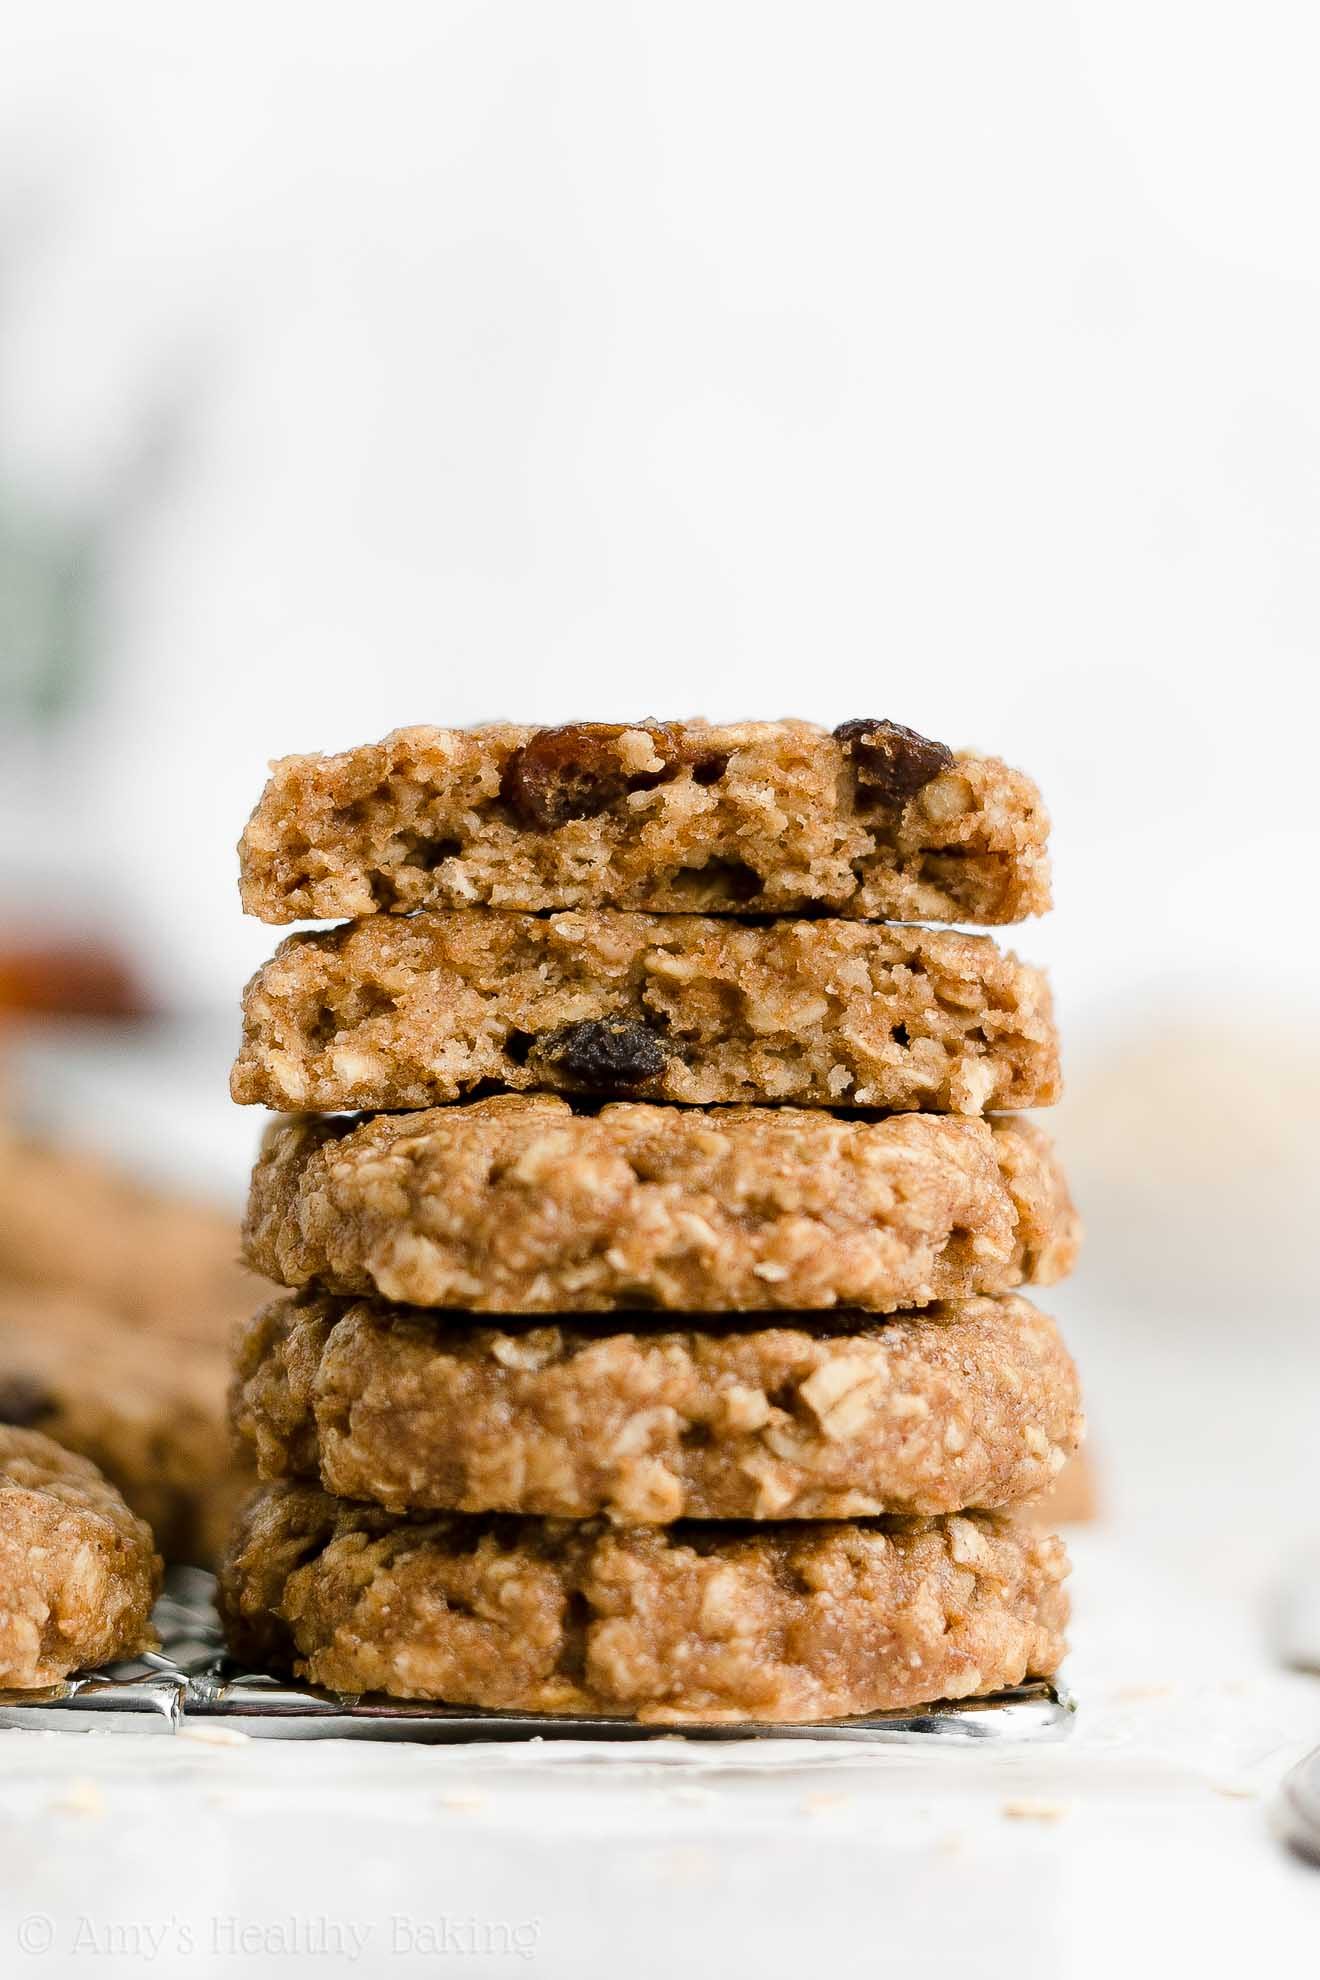 Best Easy Soft Chewy Healthy Vegan Gluten Free Flourless Oatmeal Raisin Cookies